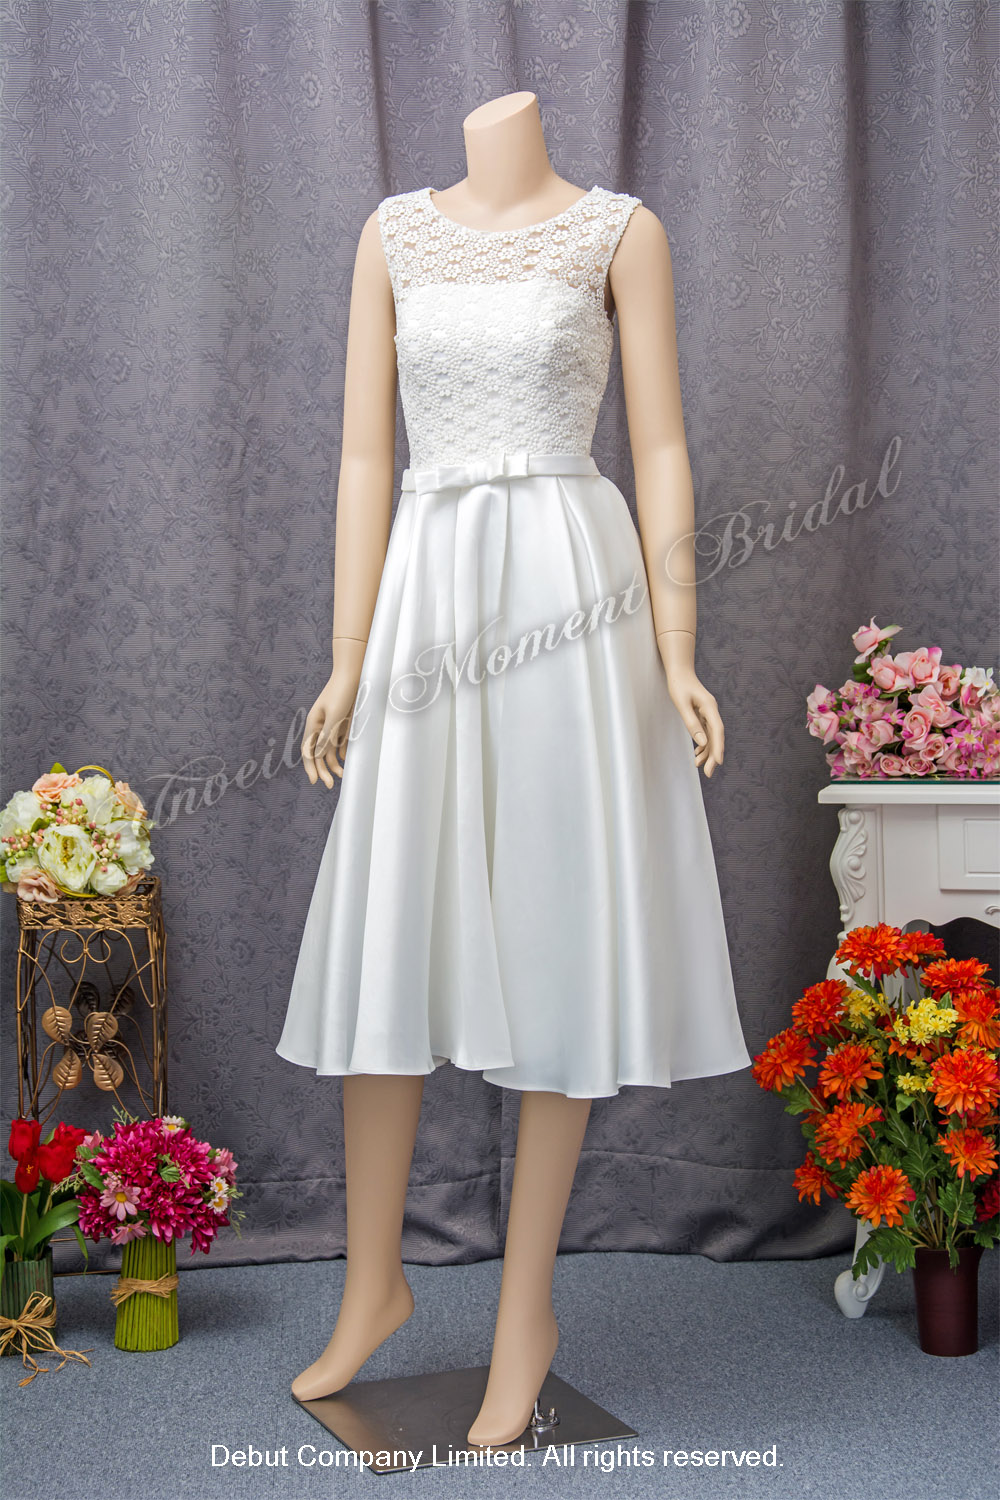 Sleeveless, lace-up short carefree bridal dress. 無袖蕾絲短裙輕婚紗